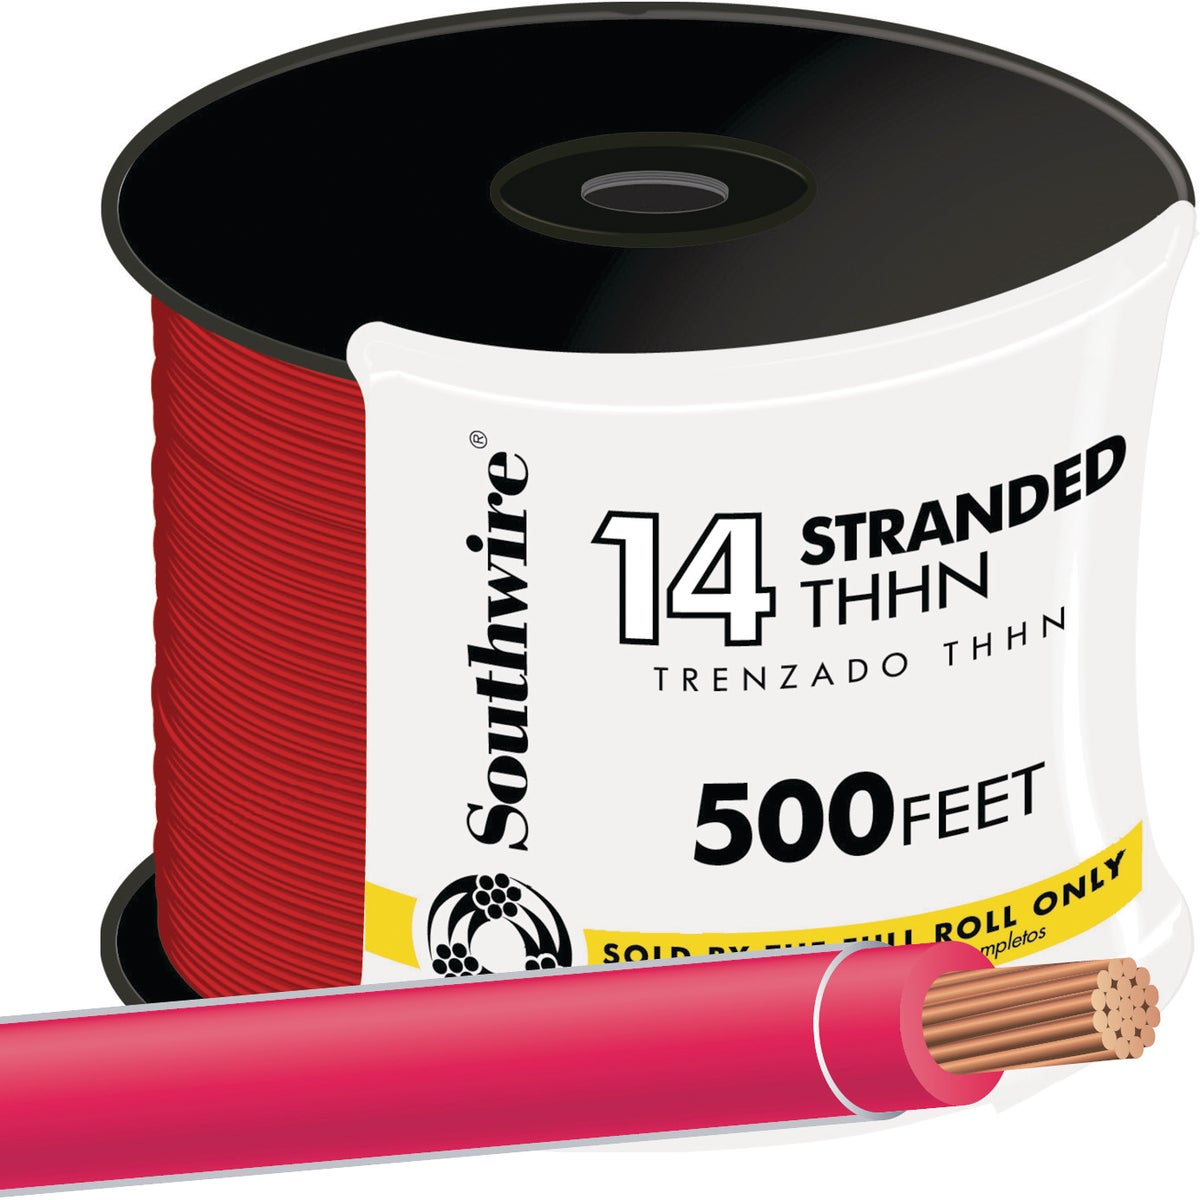 500' 14STR RED THHN WIRE - 22957558 by Southwire Company